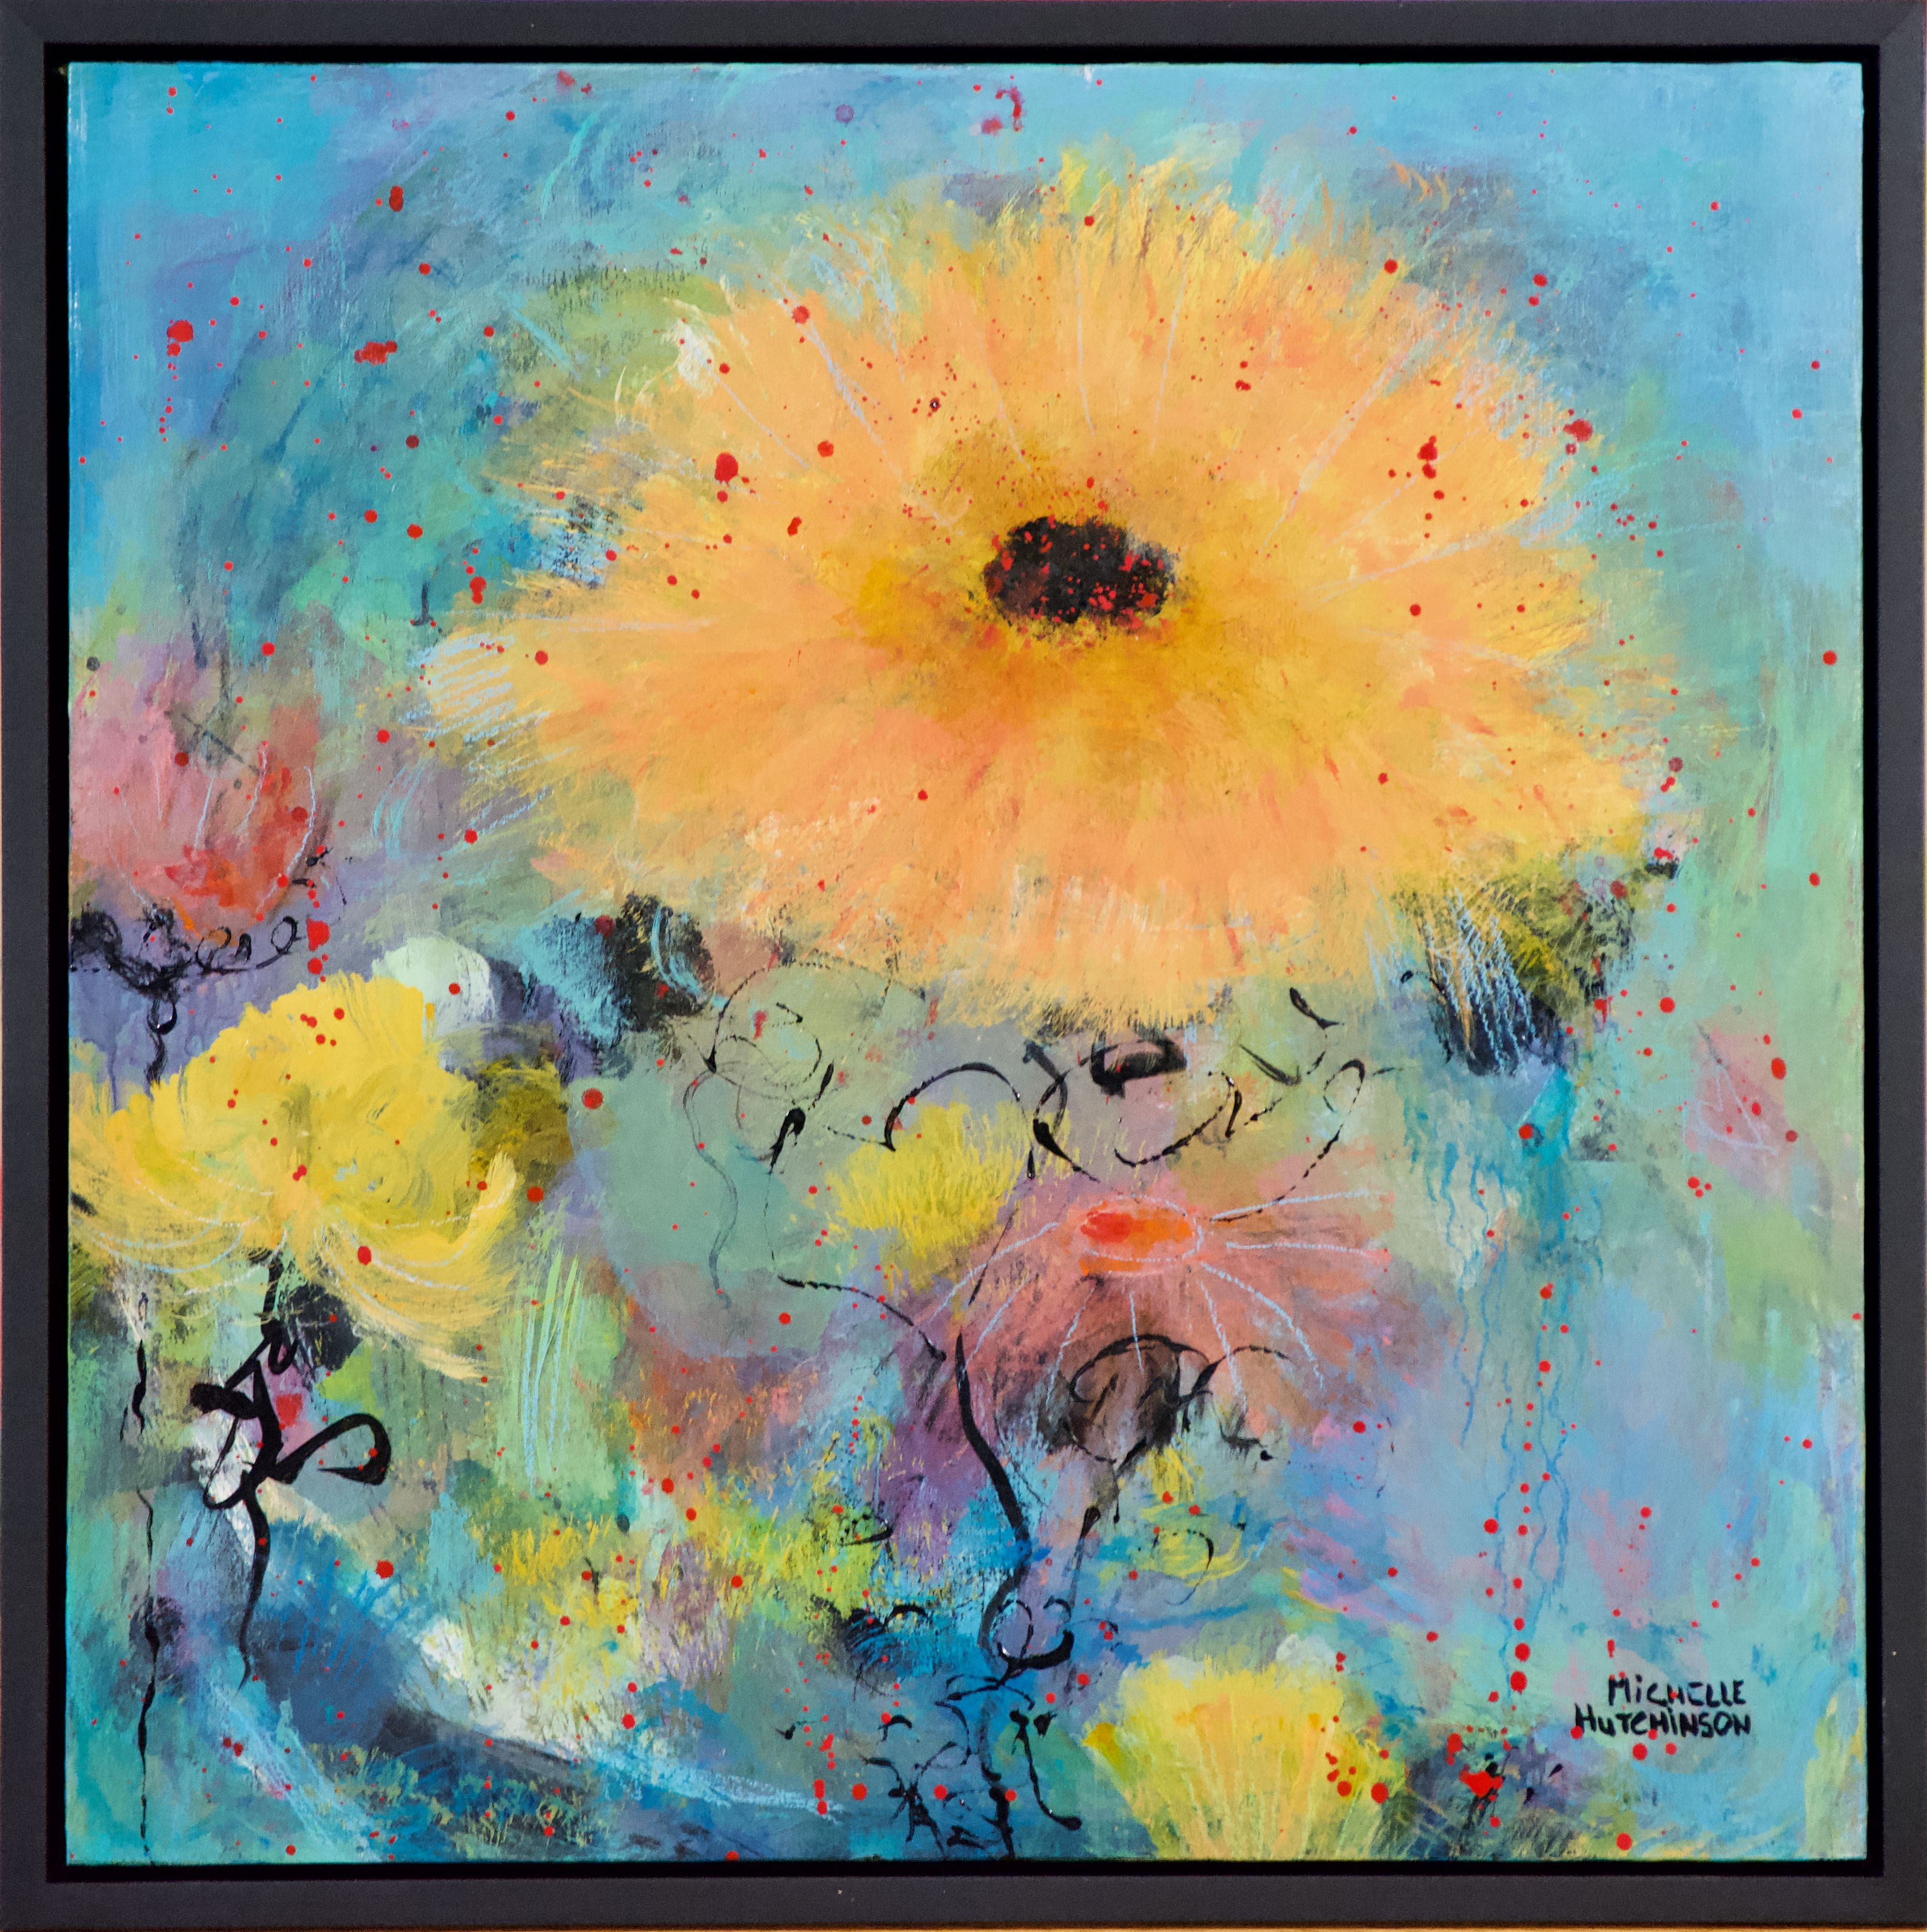 Gorgeous yellow and gold blossom against a blue and green background. This painting is full of expressive mark making. So much fun!